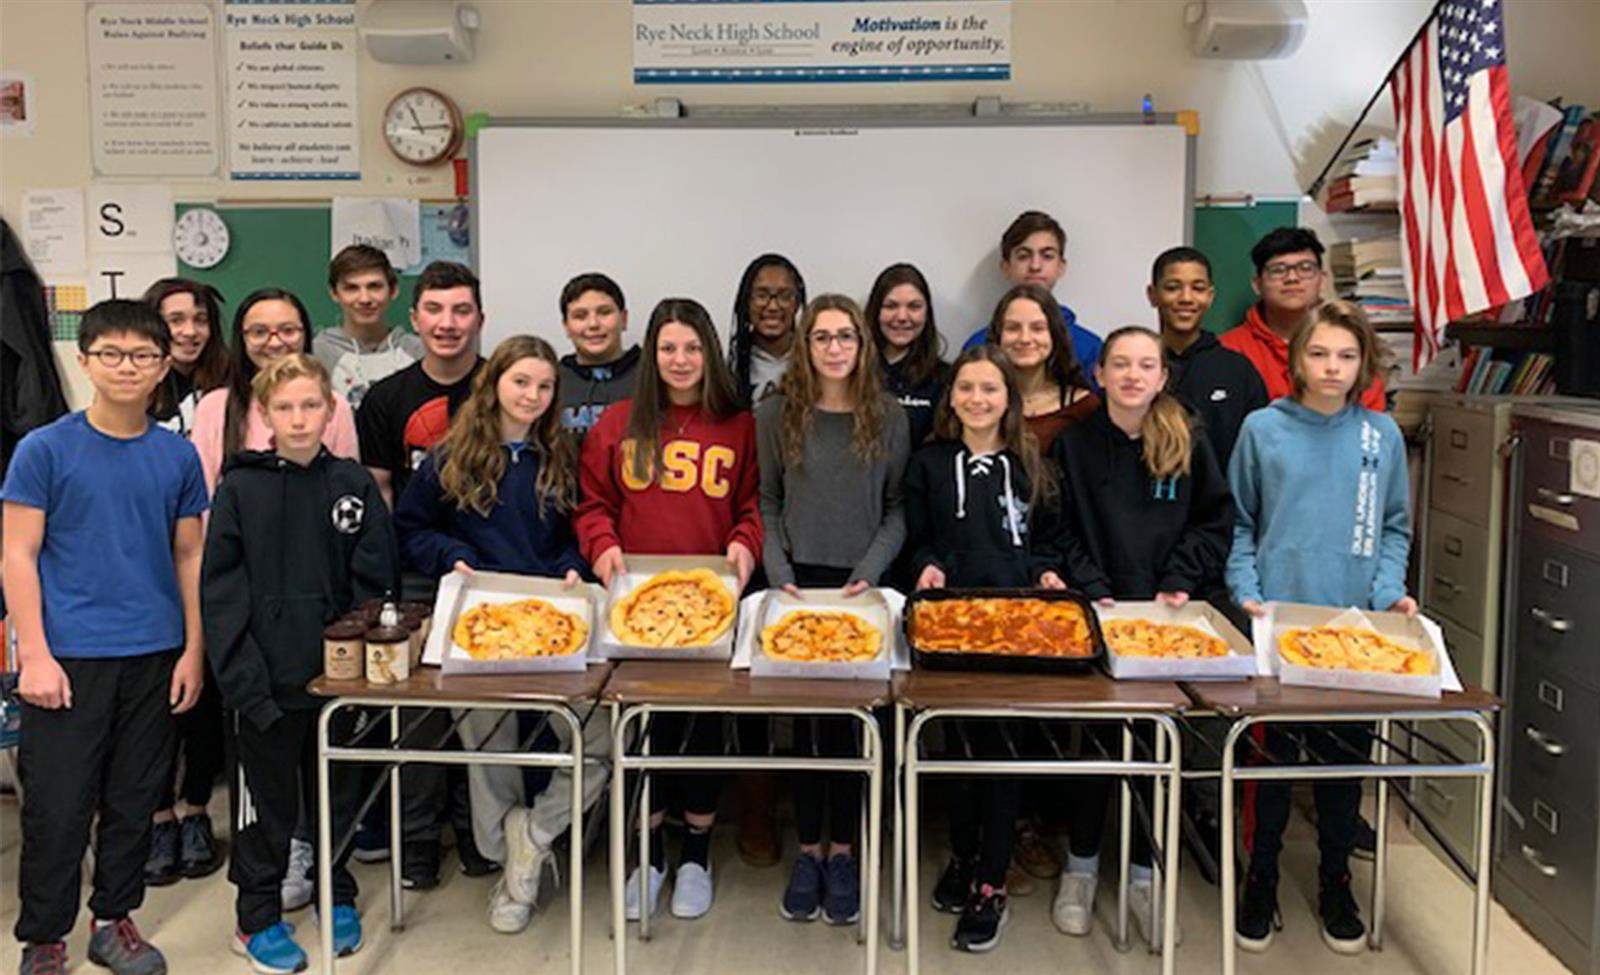 Eighth Graders Celebrate Italian Culture With Pizza